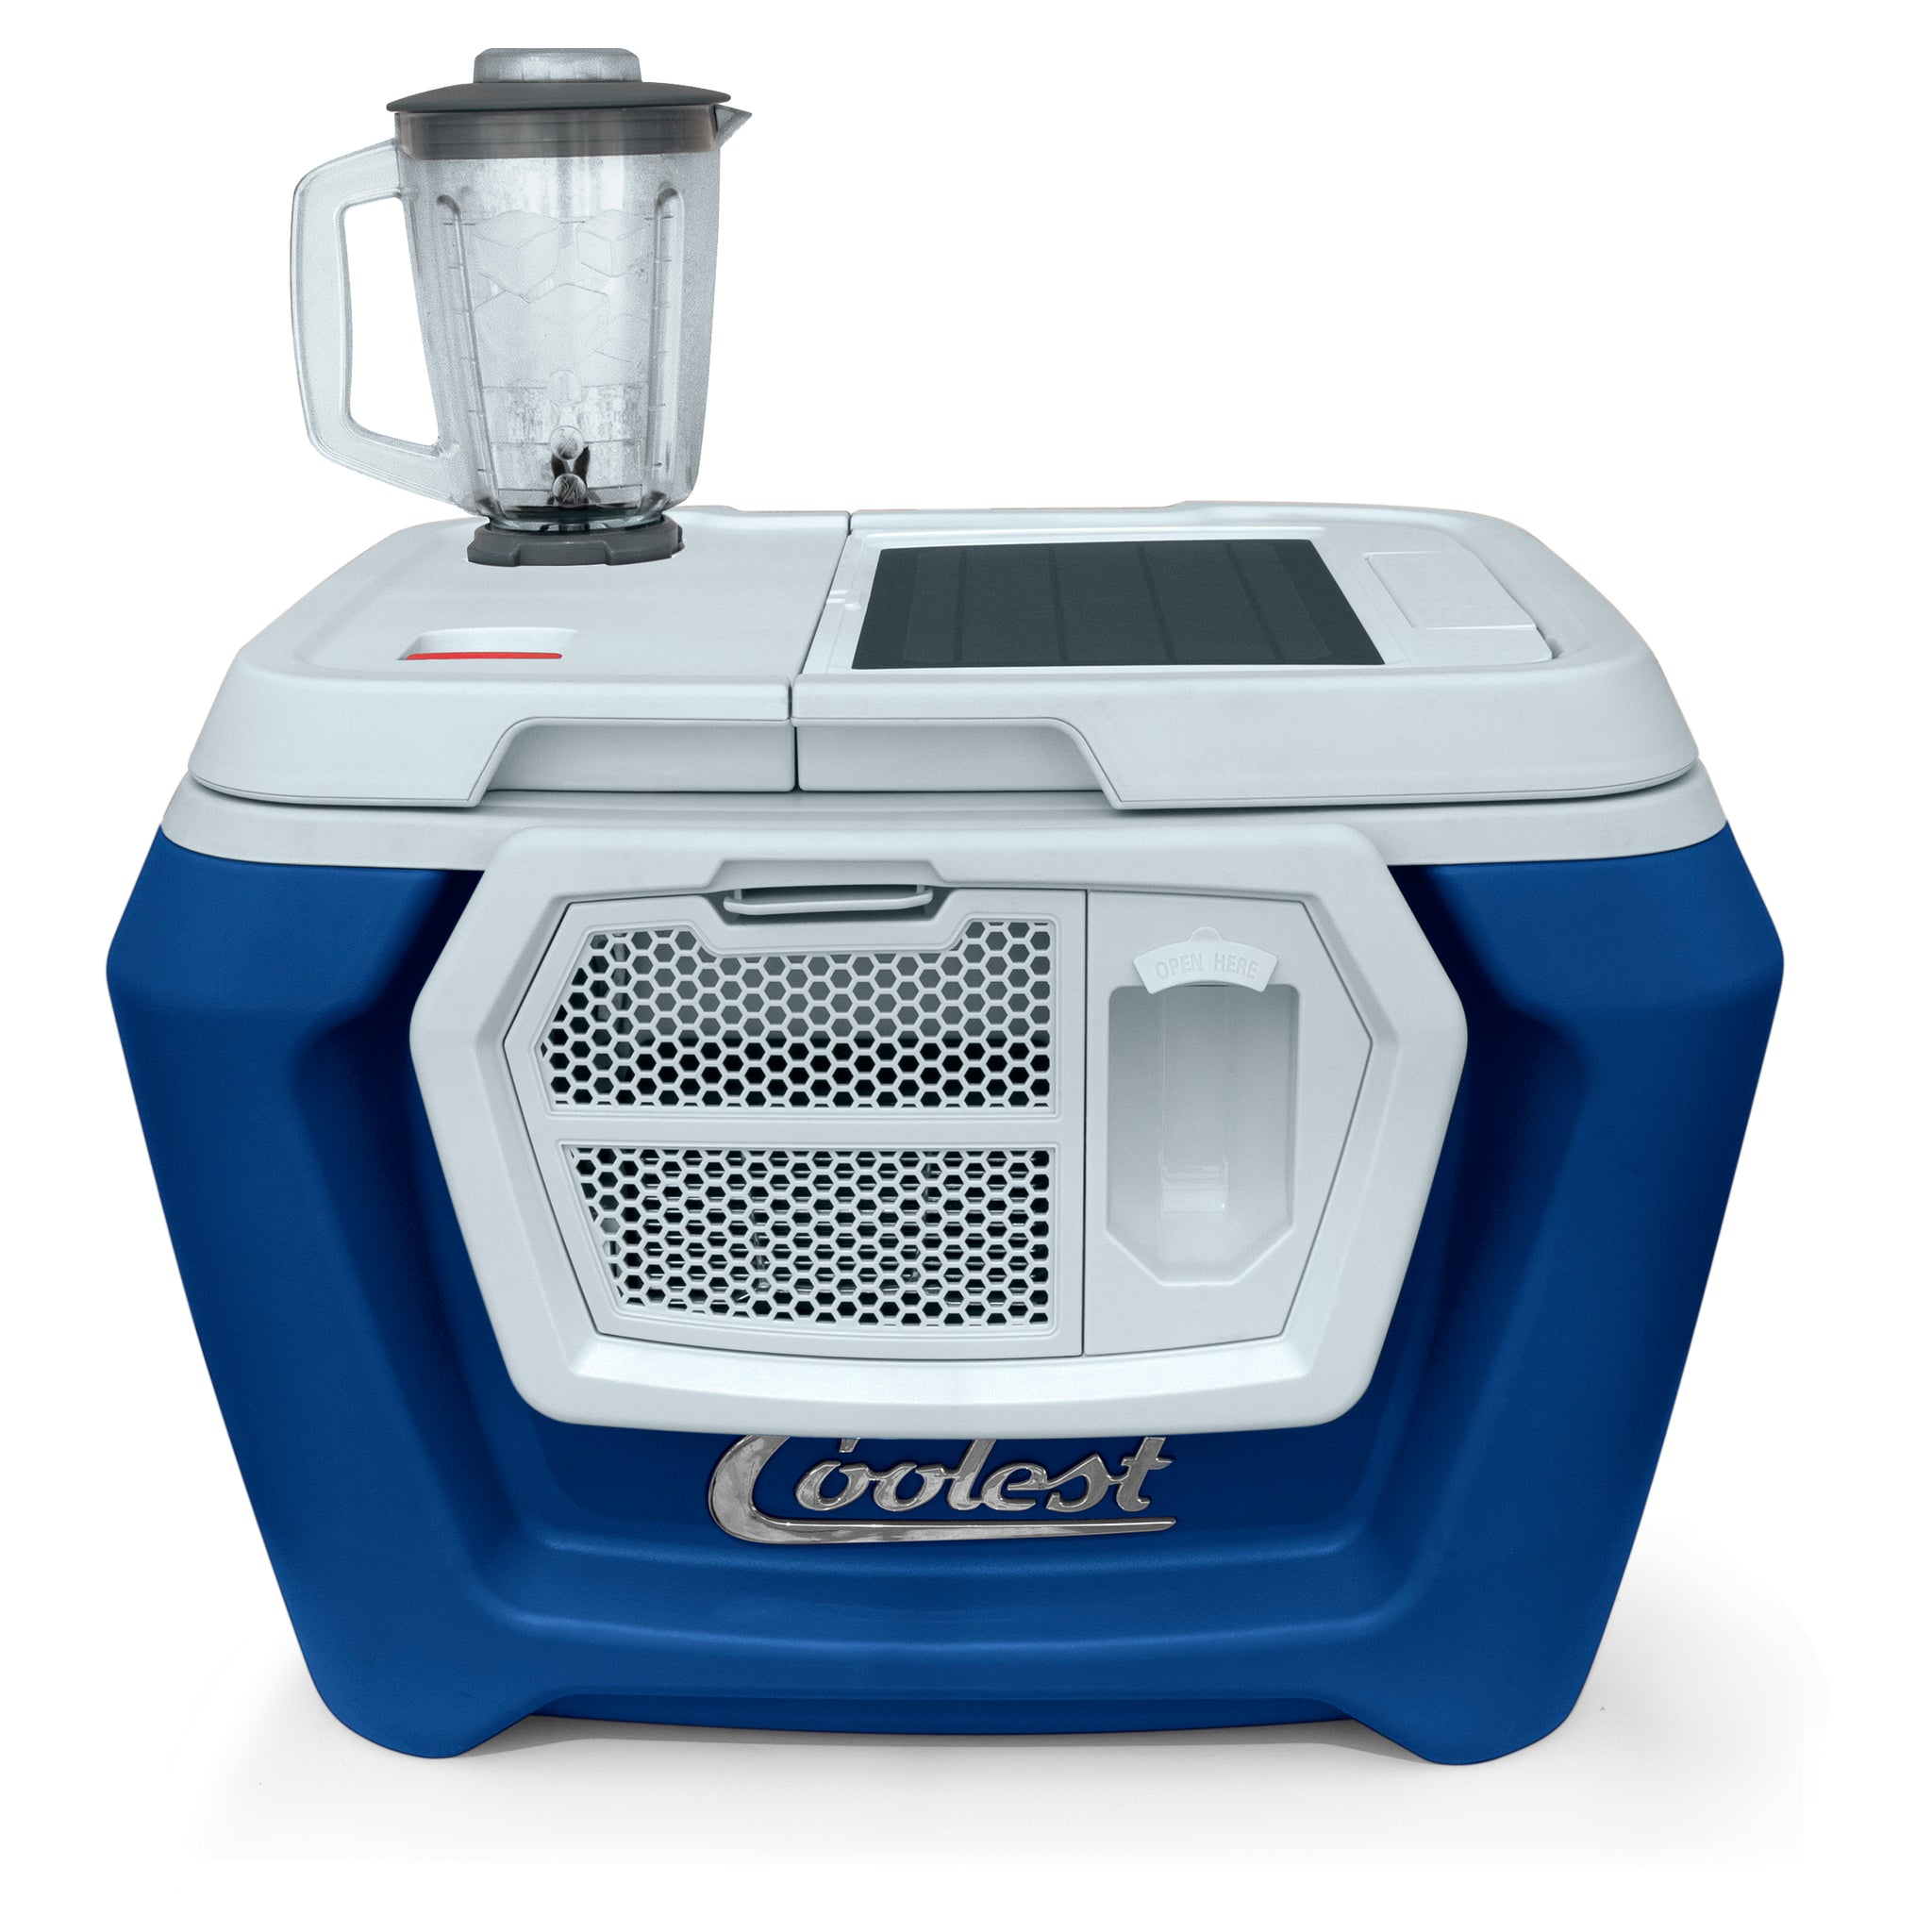 Classic Coolest With Blender & Solar Charger